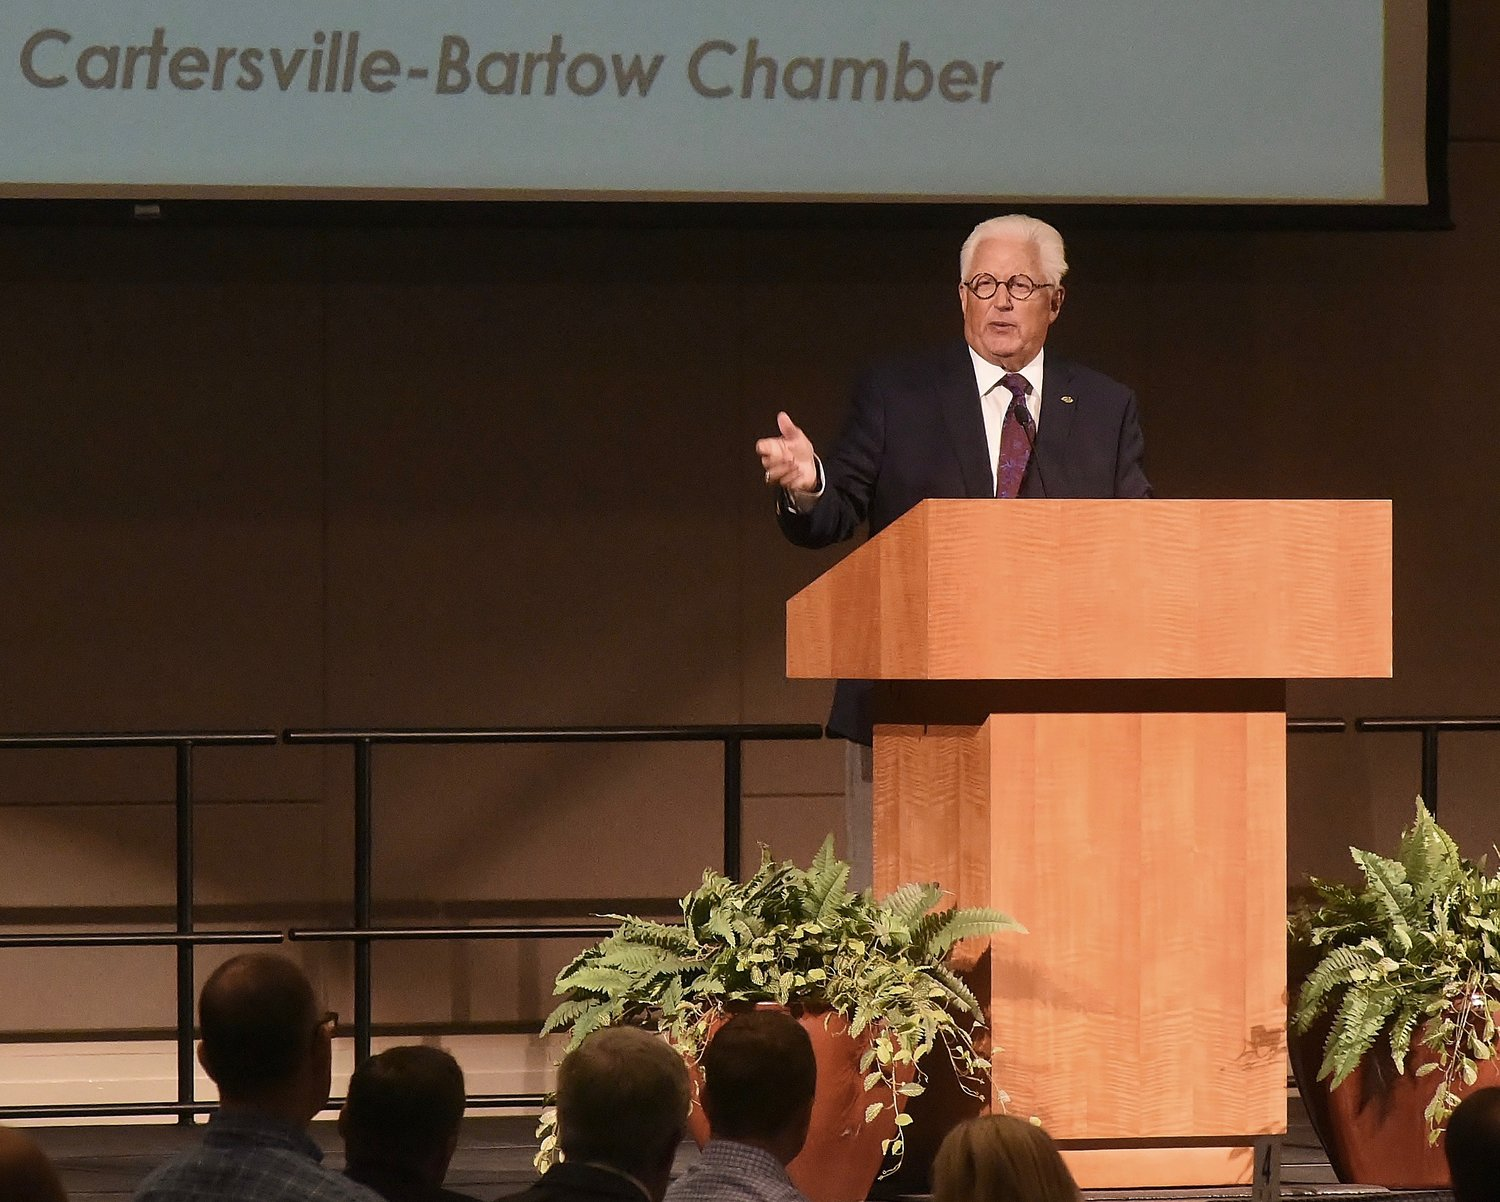 Dr. Dwight Reighard, the president and CEO of Marietta-based MUST Ministries, speaks at Tuesday afternoon's Cartersville-Bartow County Chamber of Commerce quarterly luncheon.